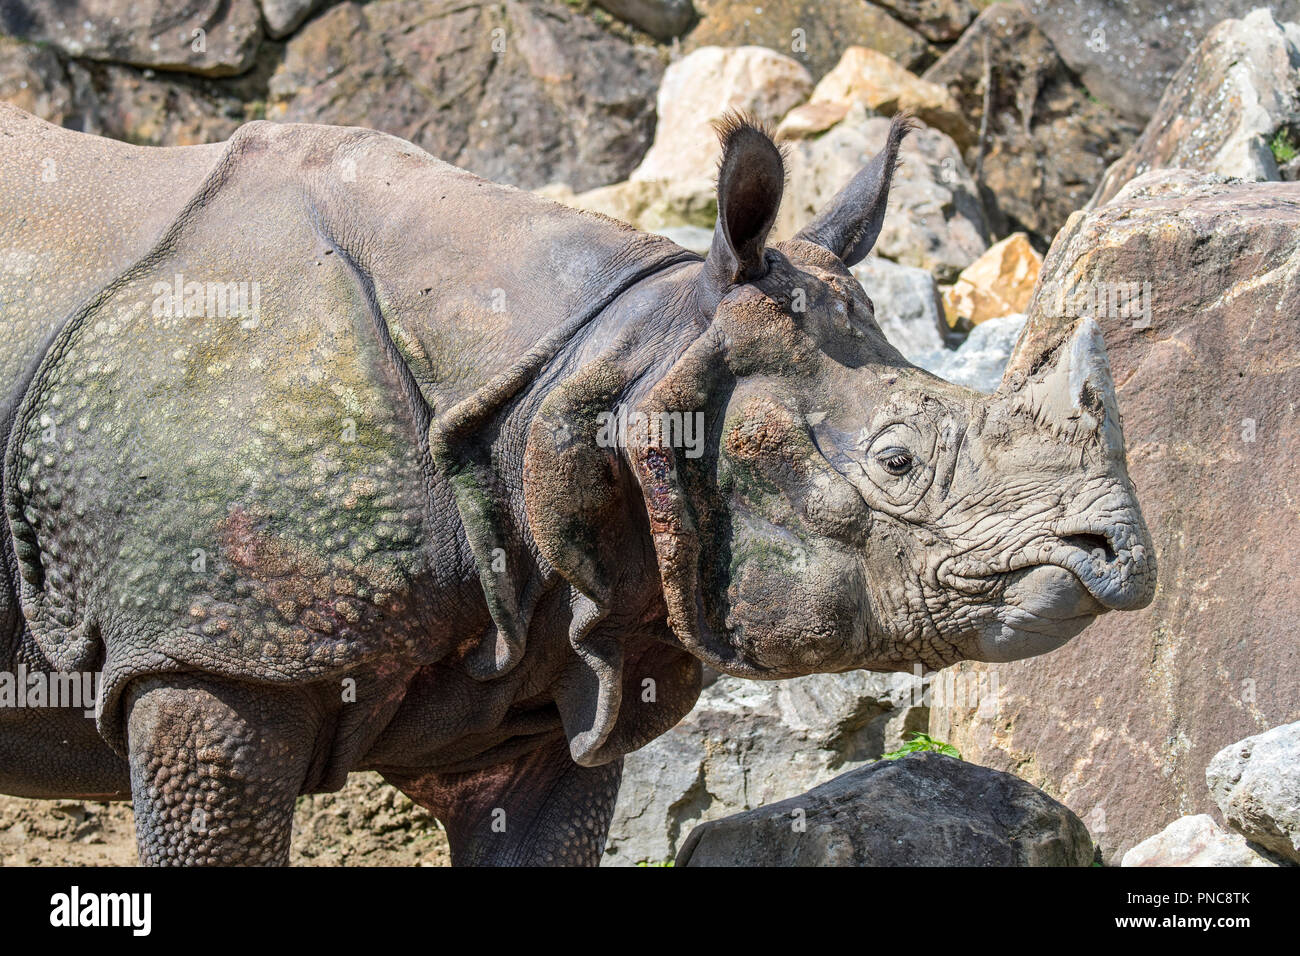 Indian rhinoceros (Rhinoceros unicornis) close-up of head with horn and typical wart-like bumps and skin folds - Stock Image